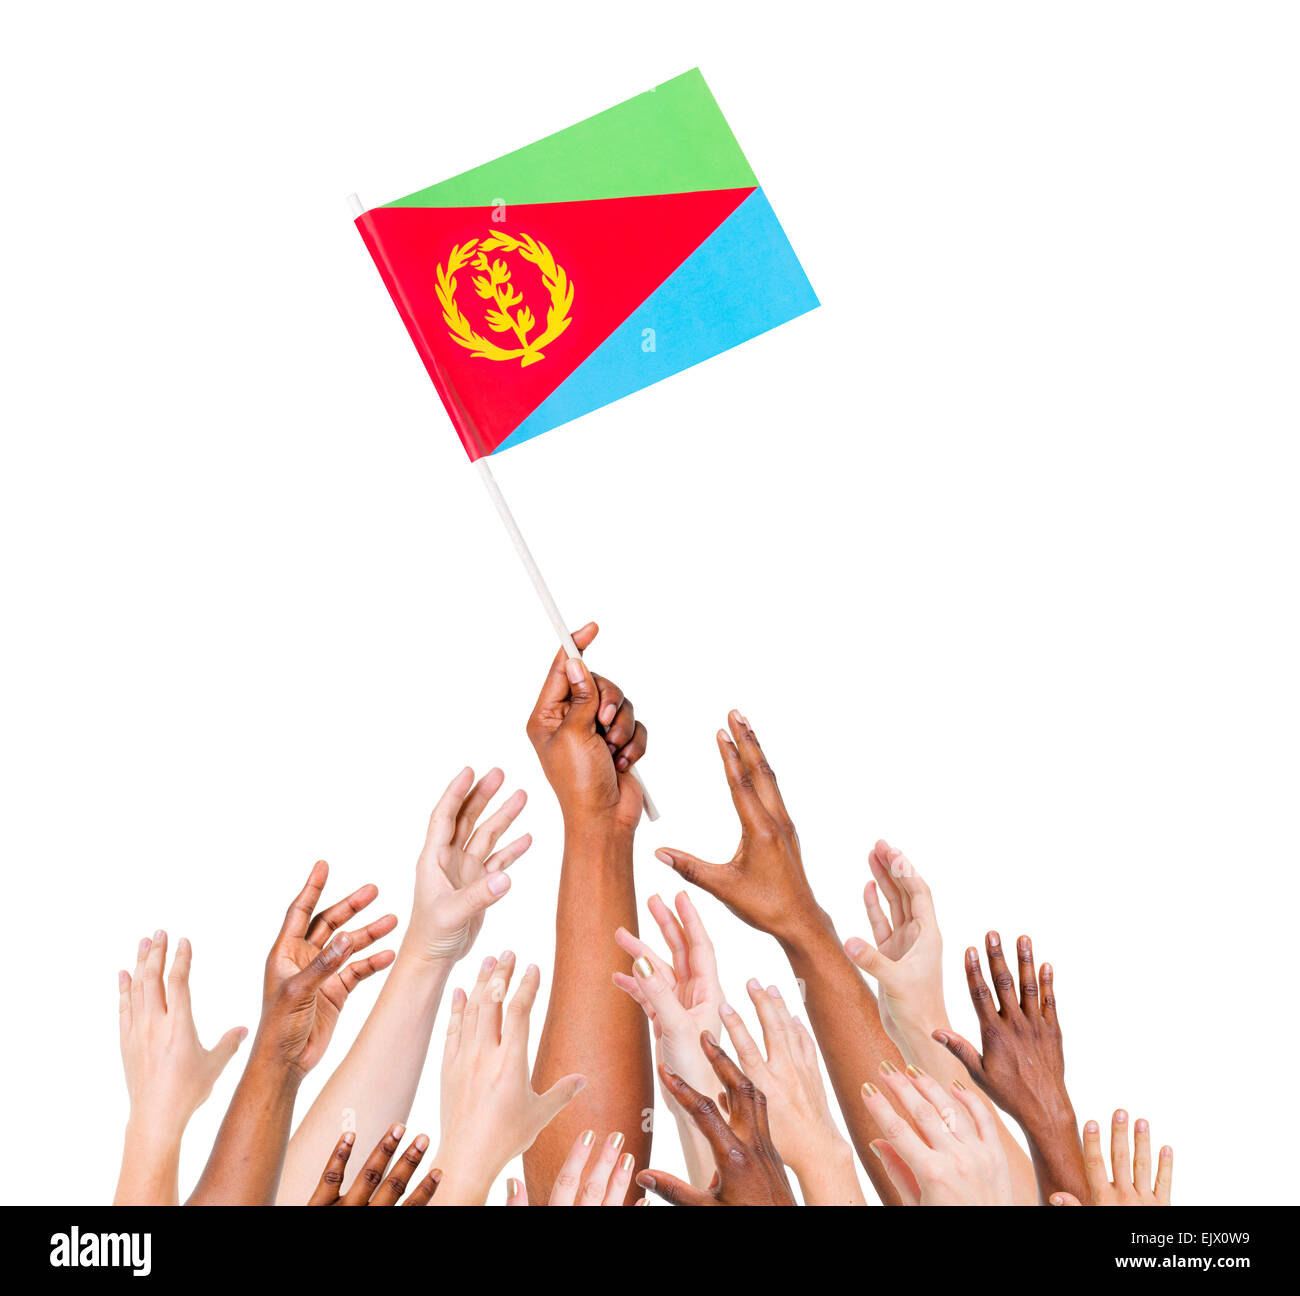 Group Of Multi-Ethnic People Reaching For And Holding The Flag Of Eritrea - Stock Image